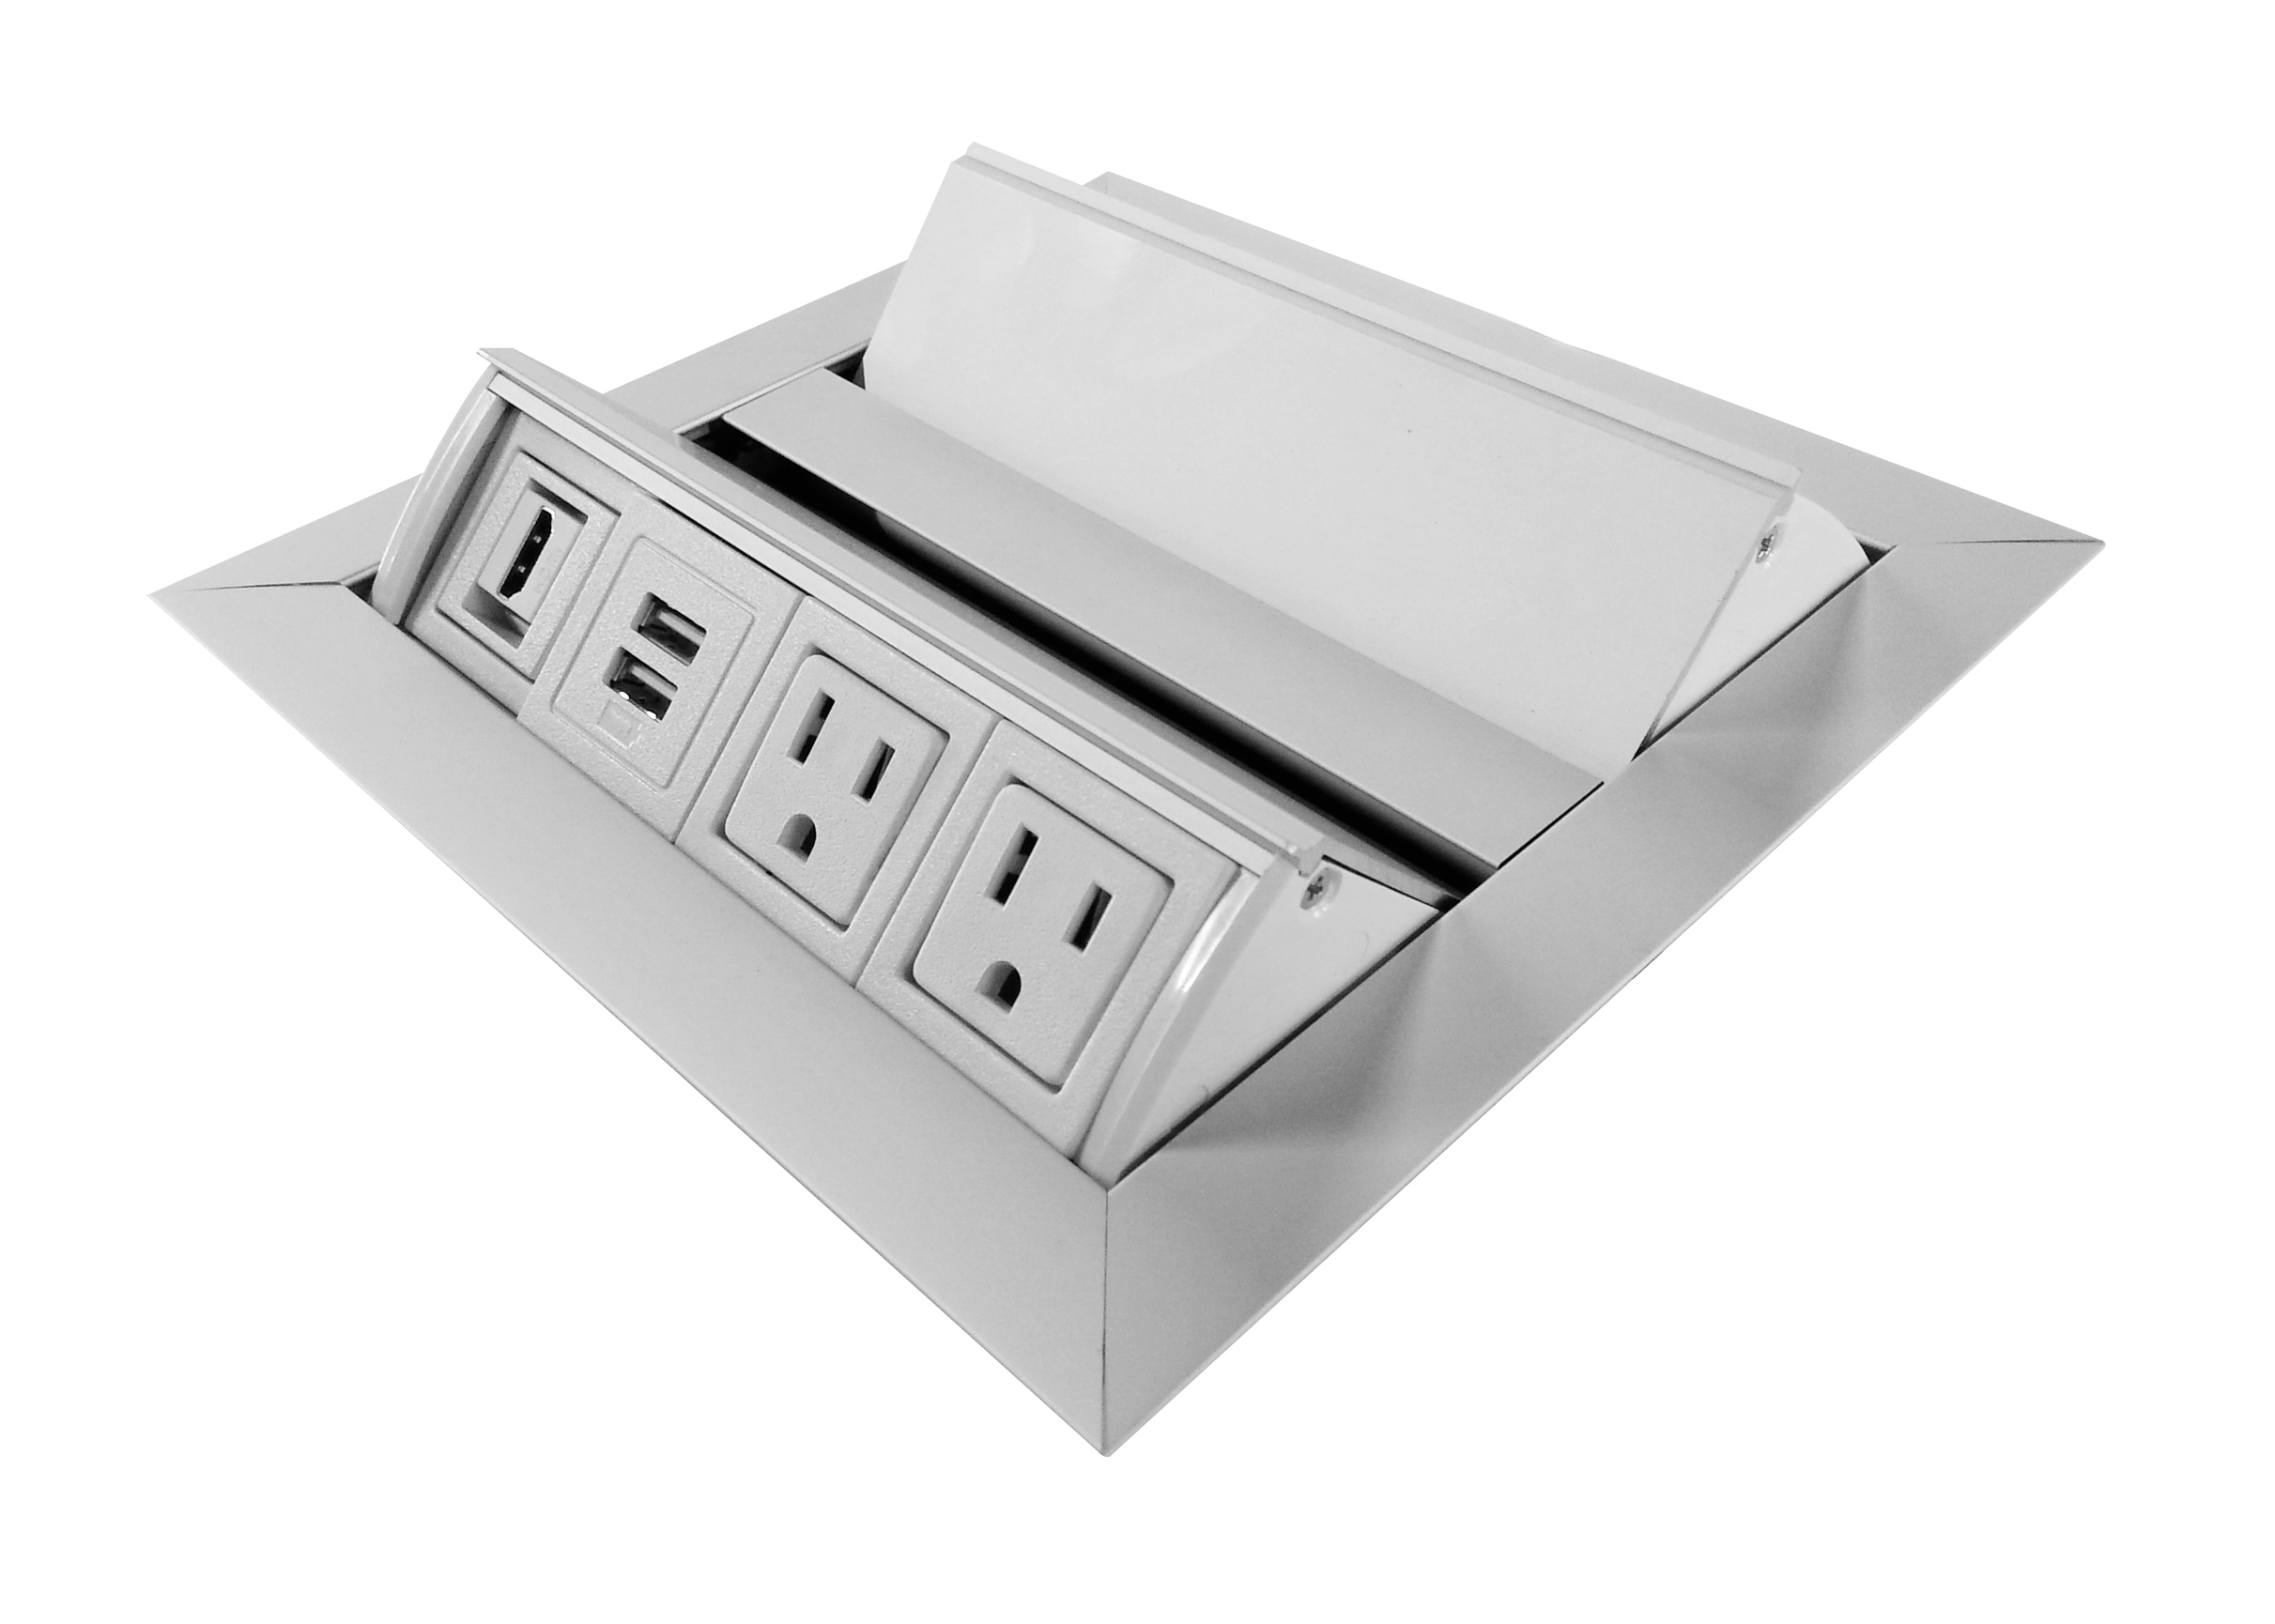 Conference table power units add USB, Audio/Video, data and more.